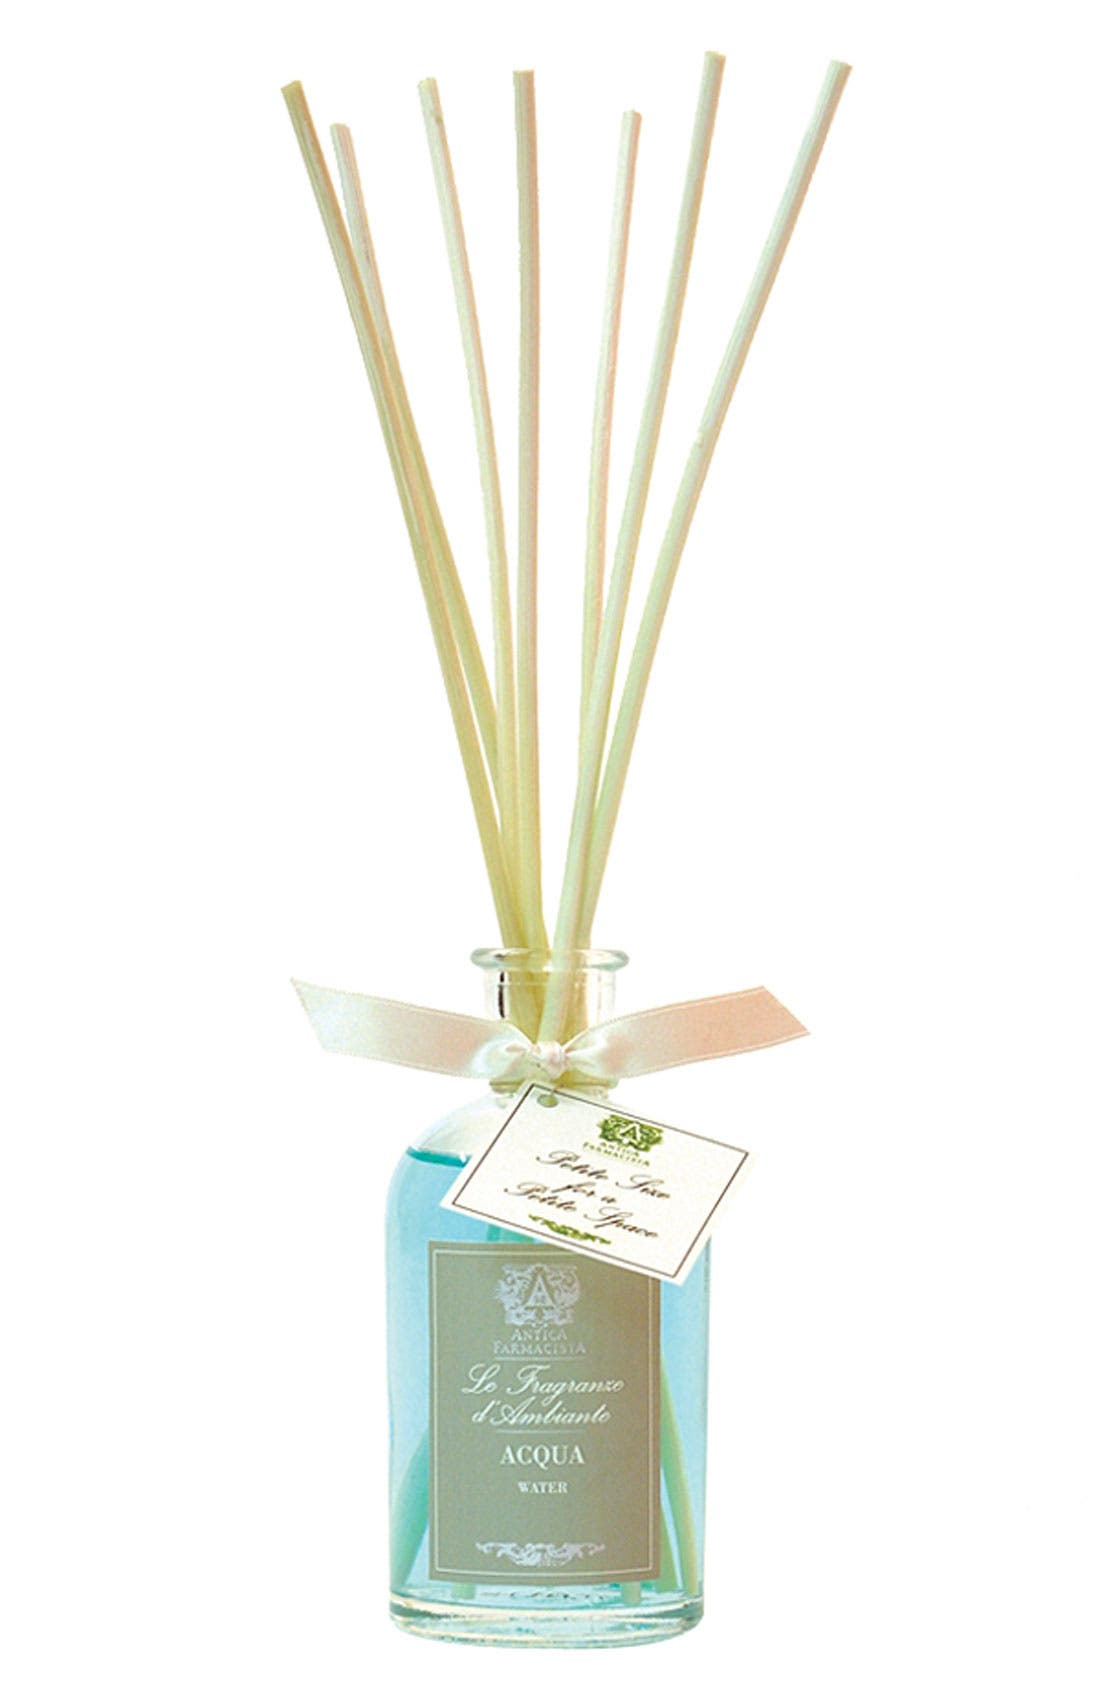 Alternate Image 1 Selected - Antica Farmacista 'Acqua' Home Ambiance Perfume (3.3 oz.)